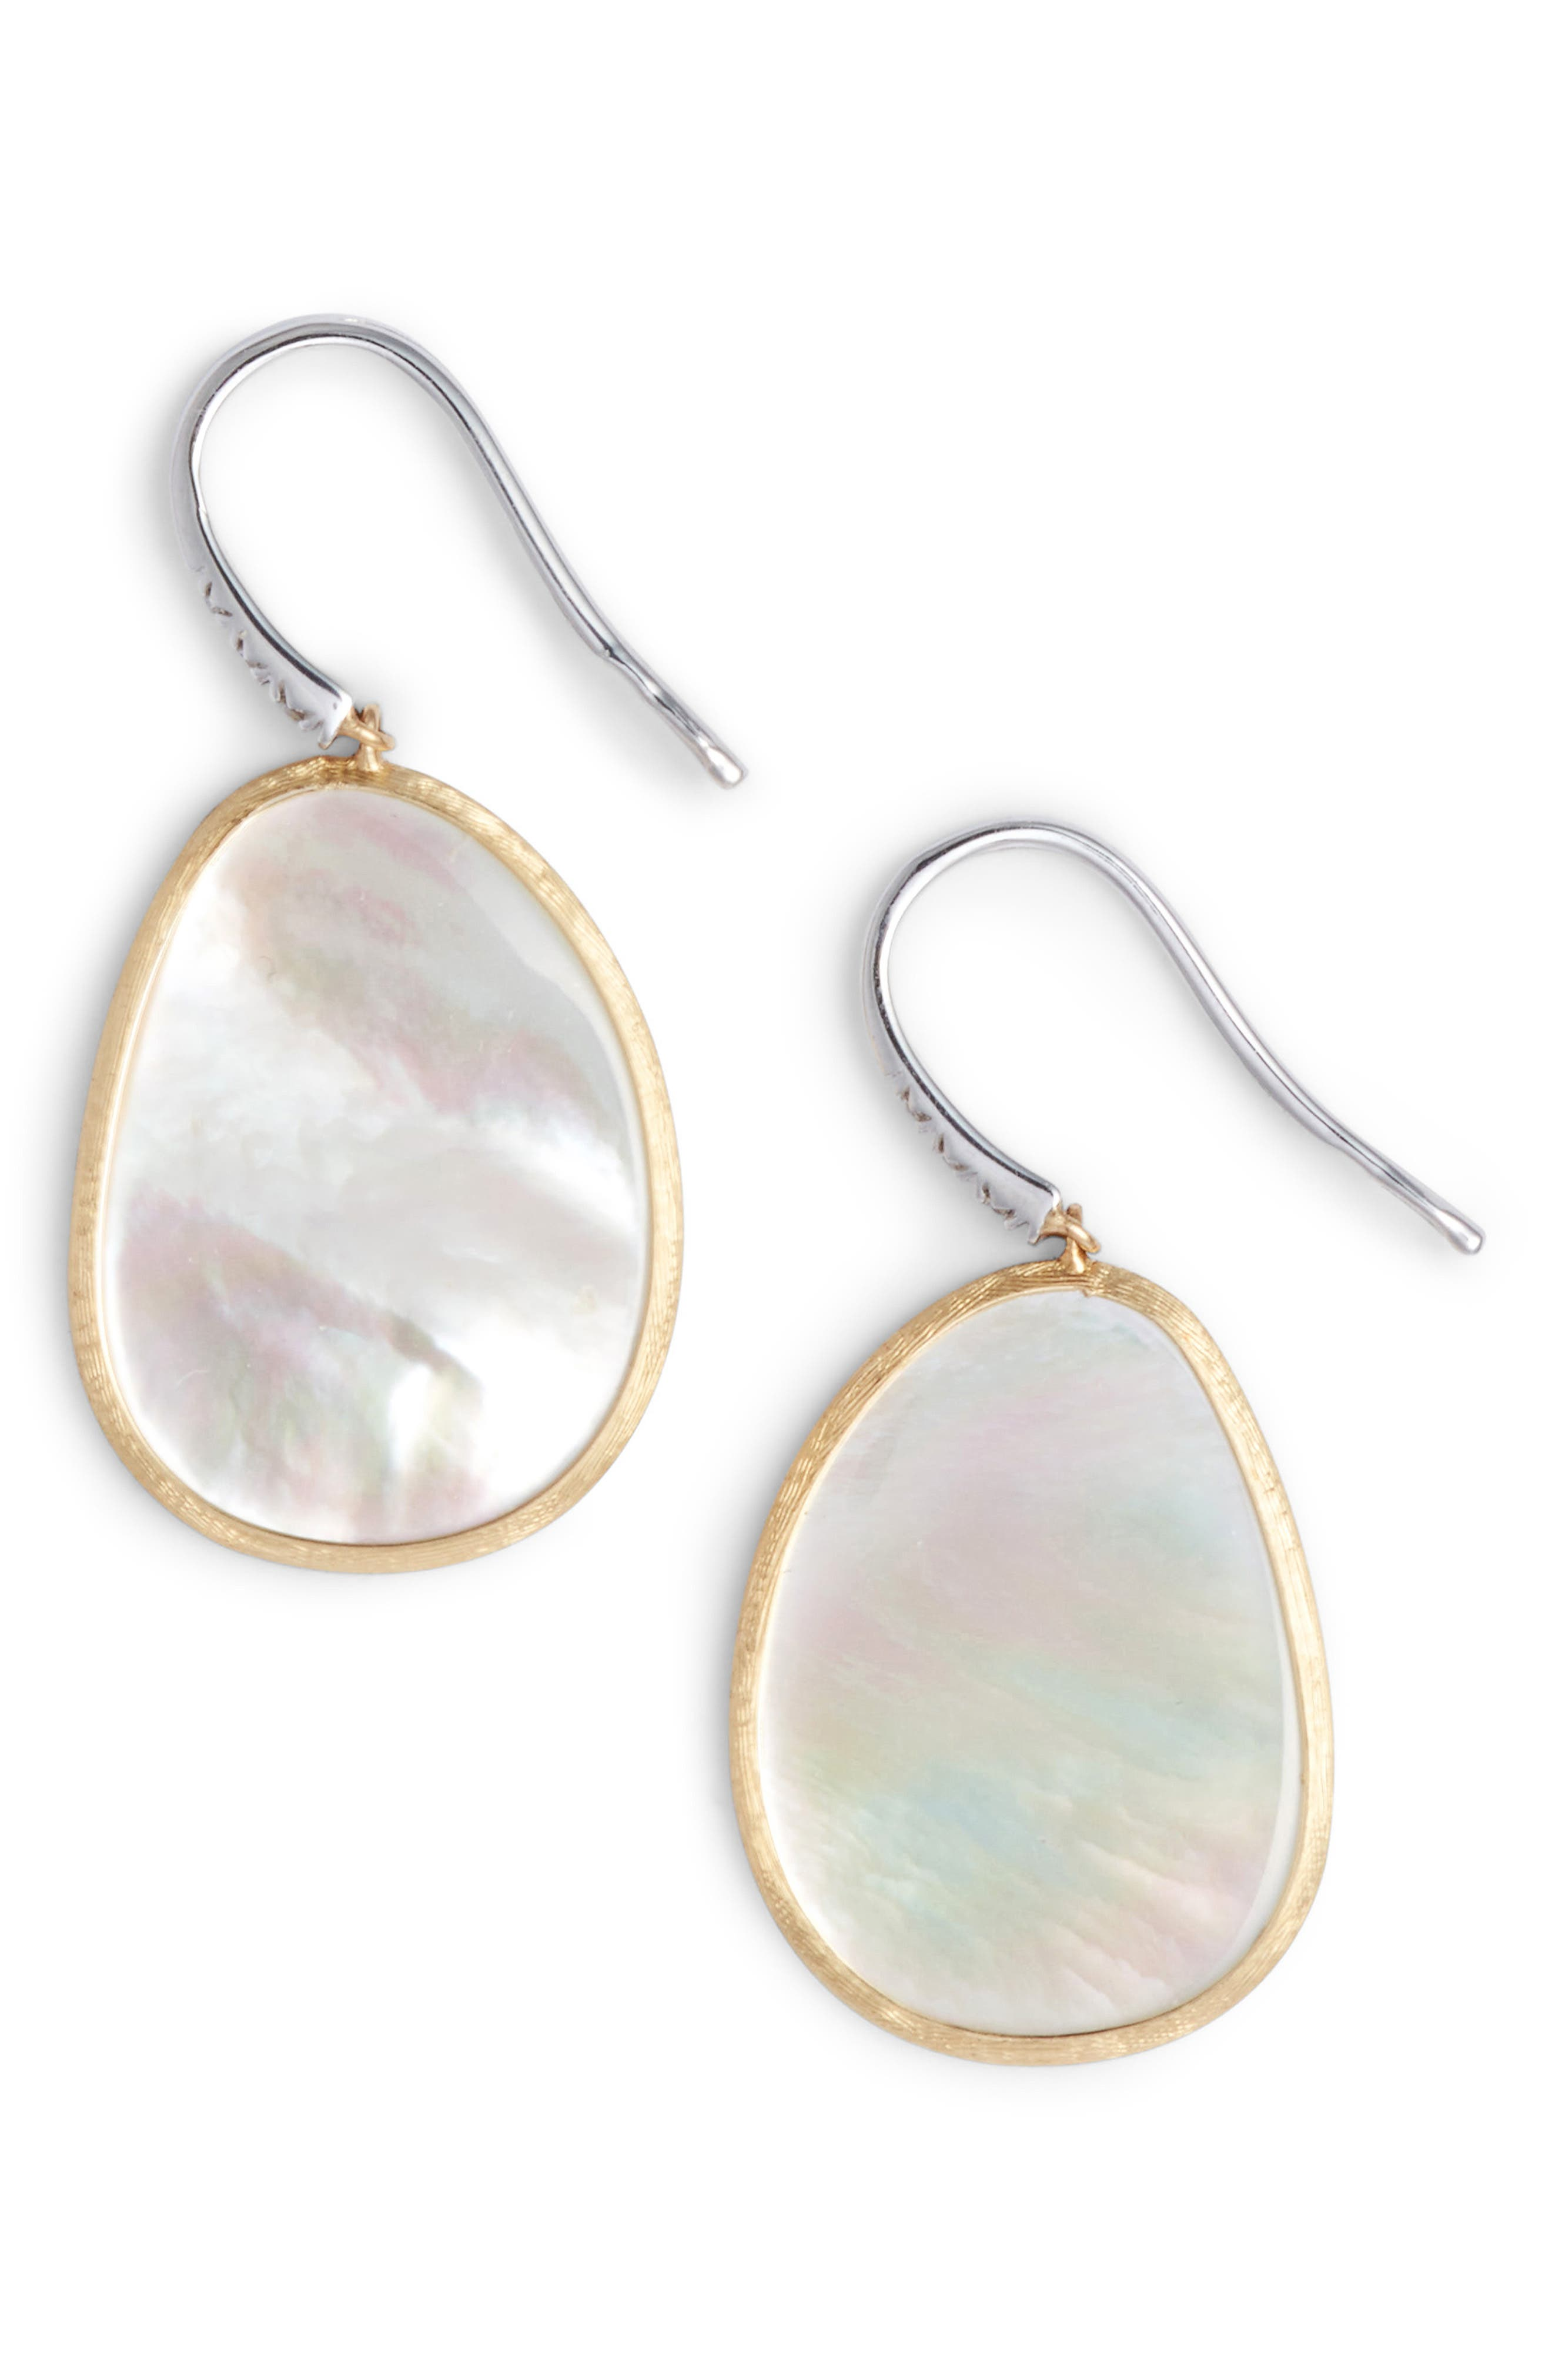 Main Image - Marco Bicego Lunaria Mother of Pearl Drop Earrings